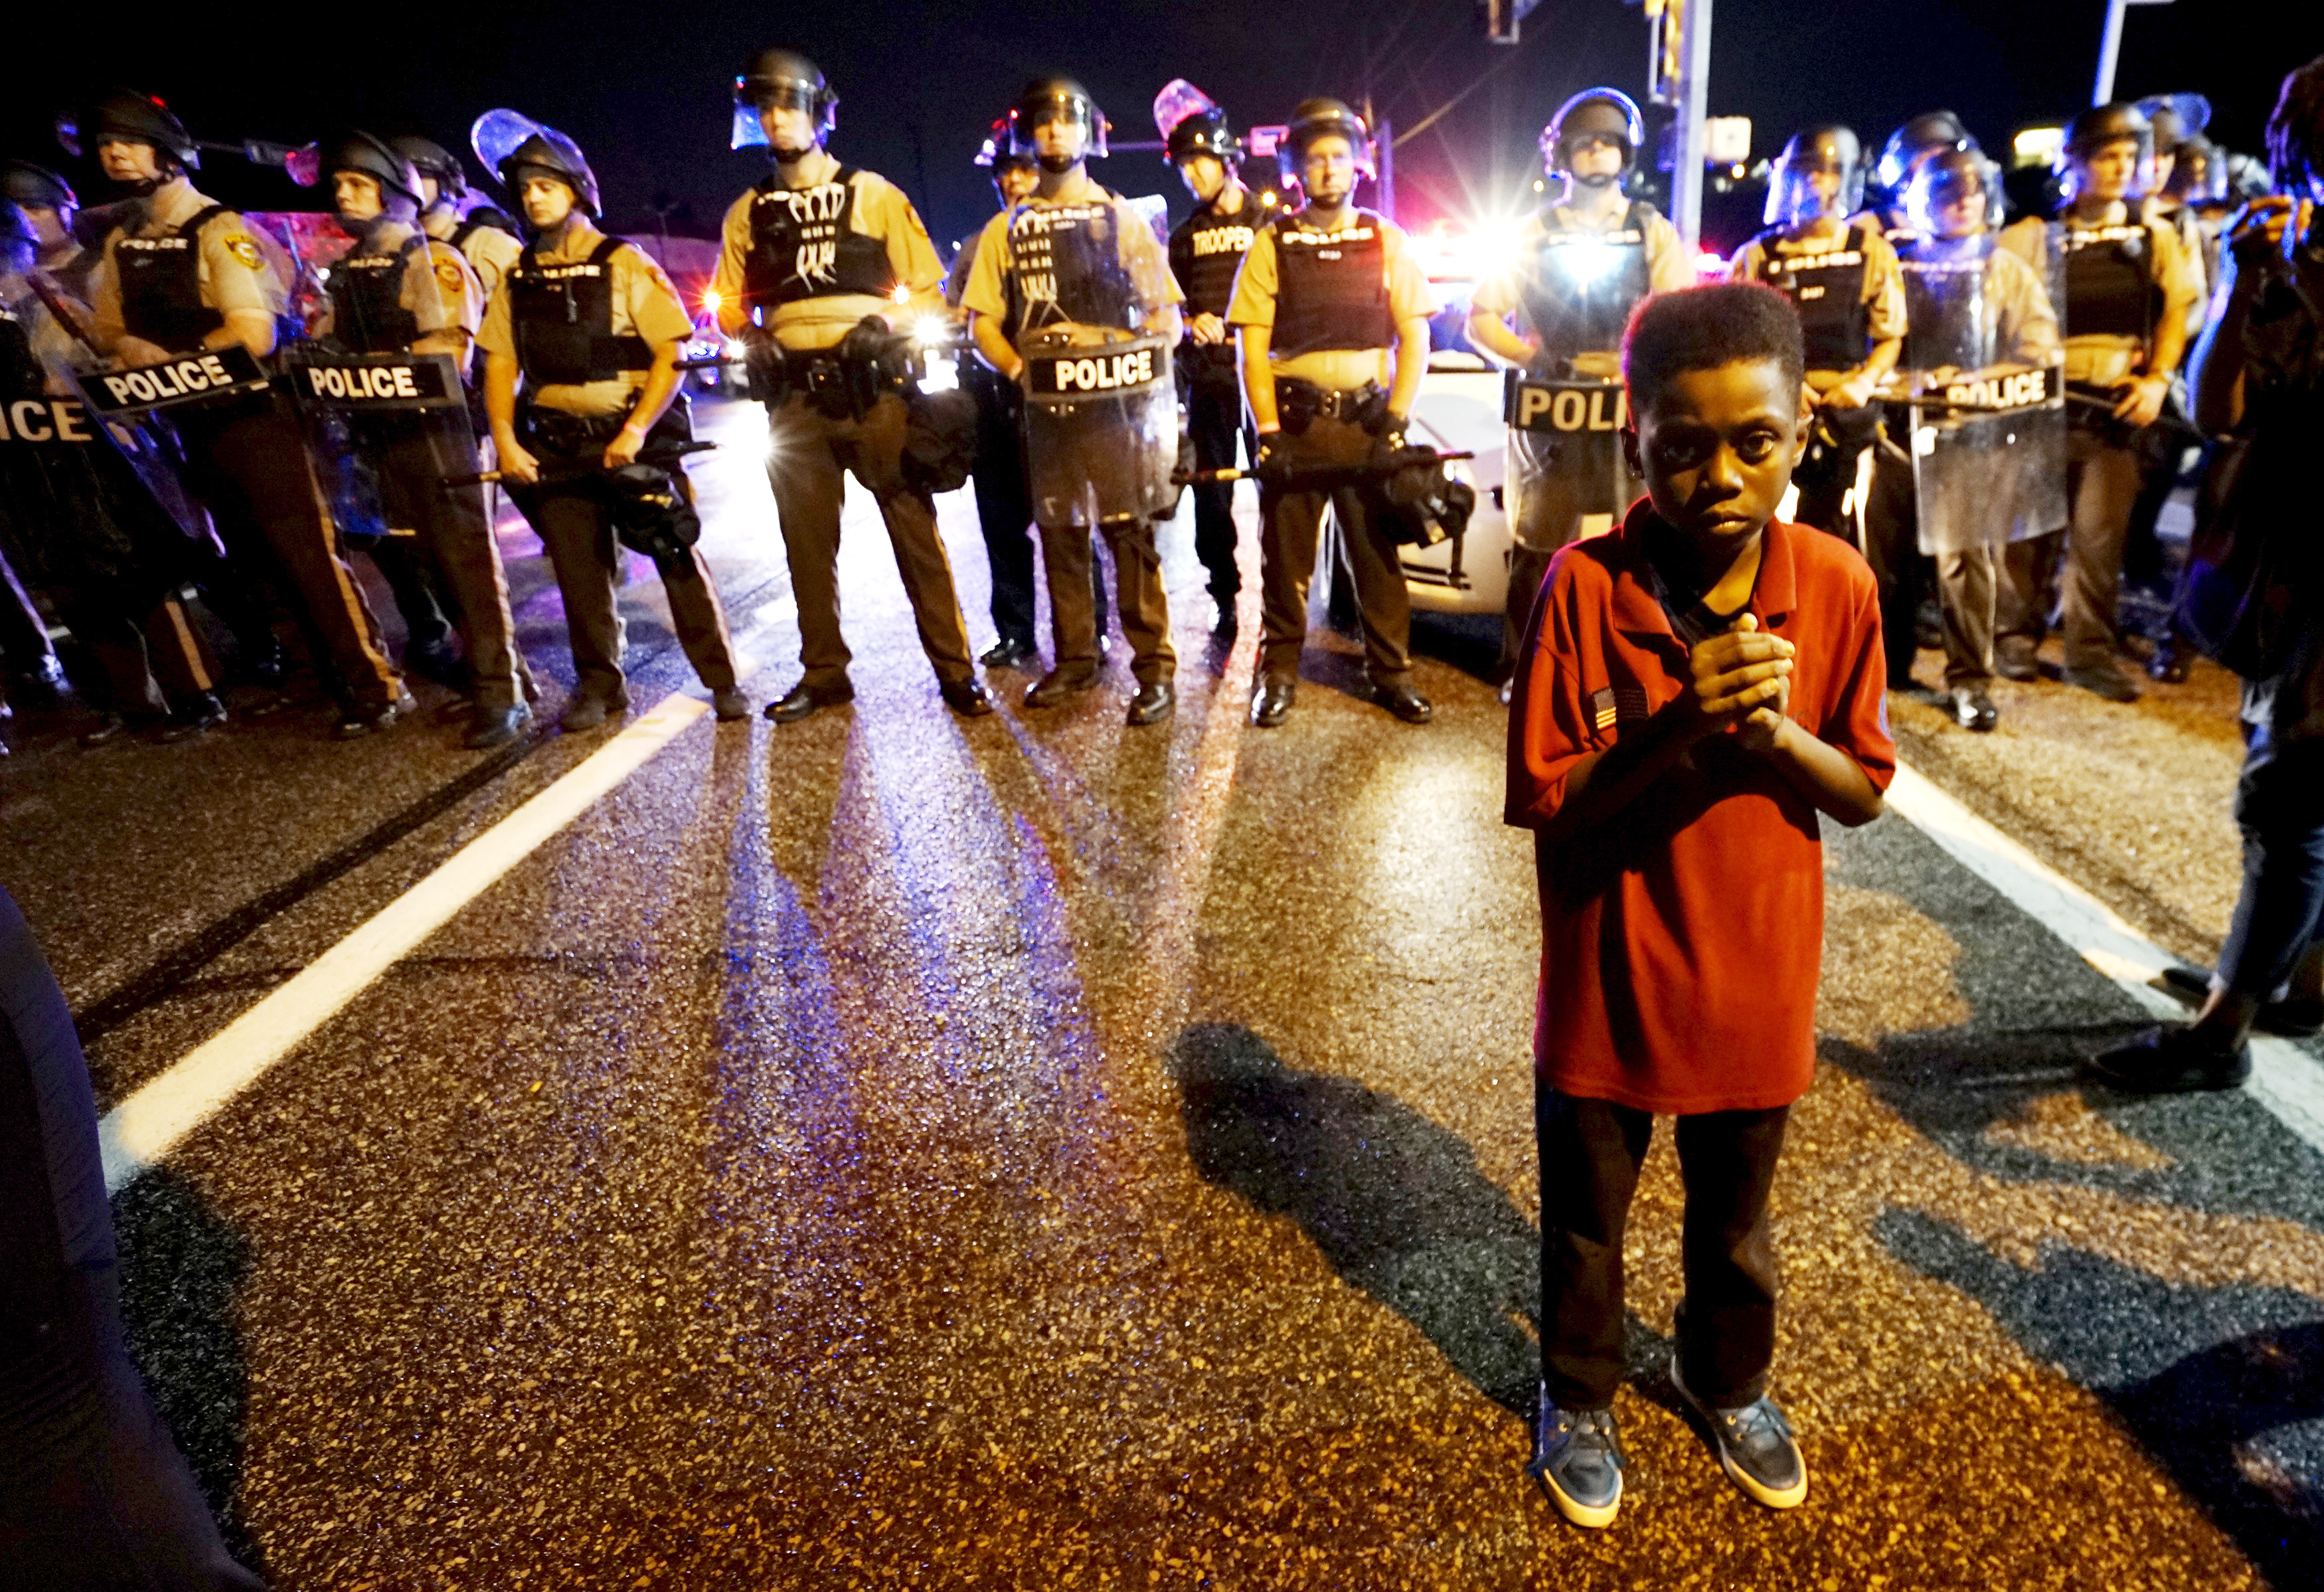 <p>Amarion Allen, 11-years-old, stands shivering in fear in the 90 degree heat with his mother protesting nearby in front of a police line shortly before shots were fired in a police-officer involved shooting in Ferguson, Missouri August 9, 2015. </p>